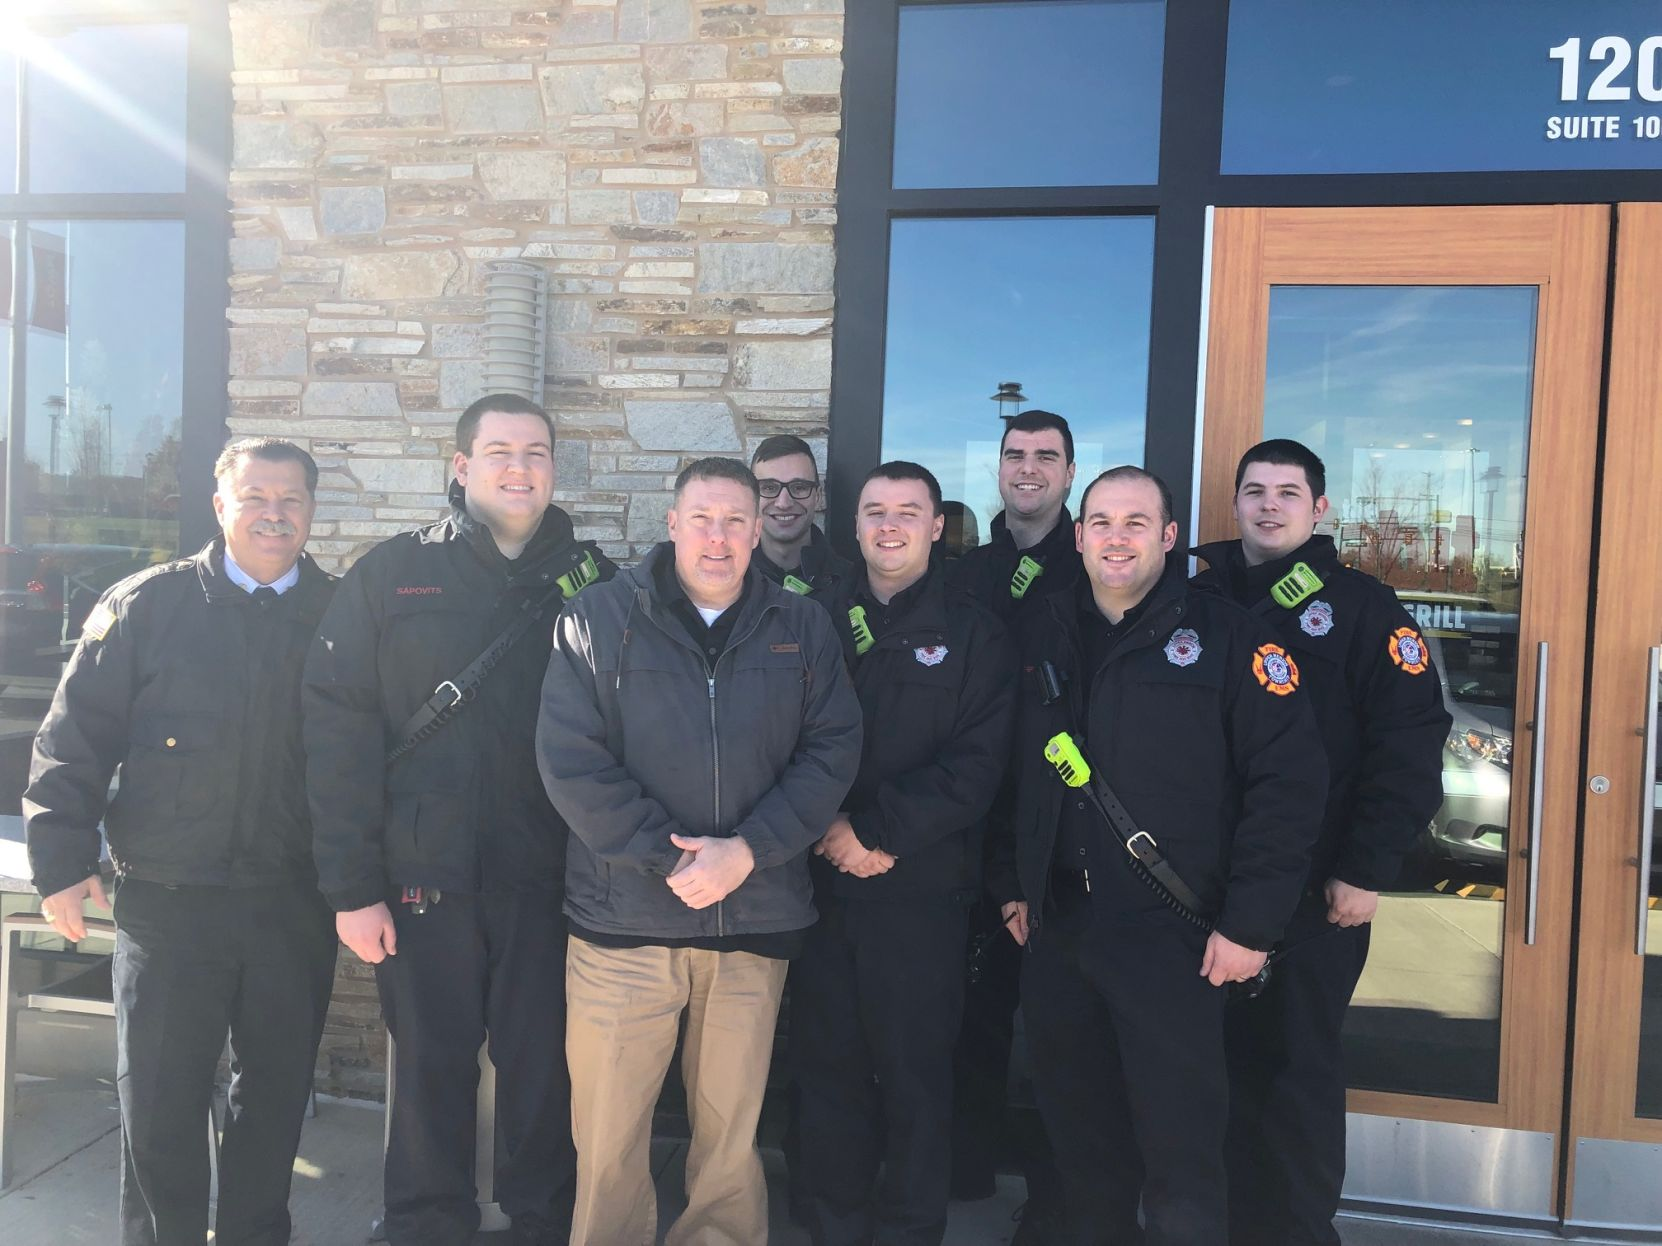 Habit Burger Grill raises money for Upper Merion Fire and Rescue